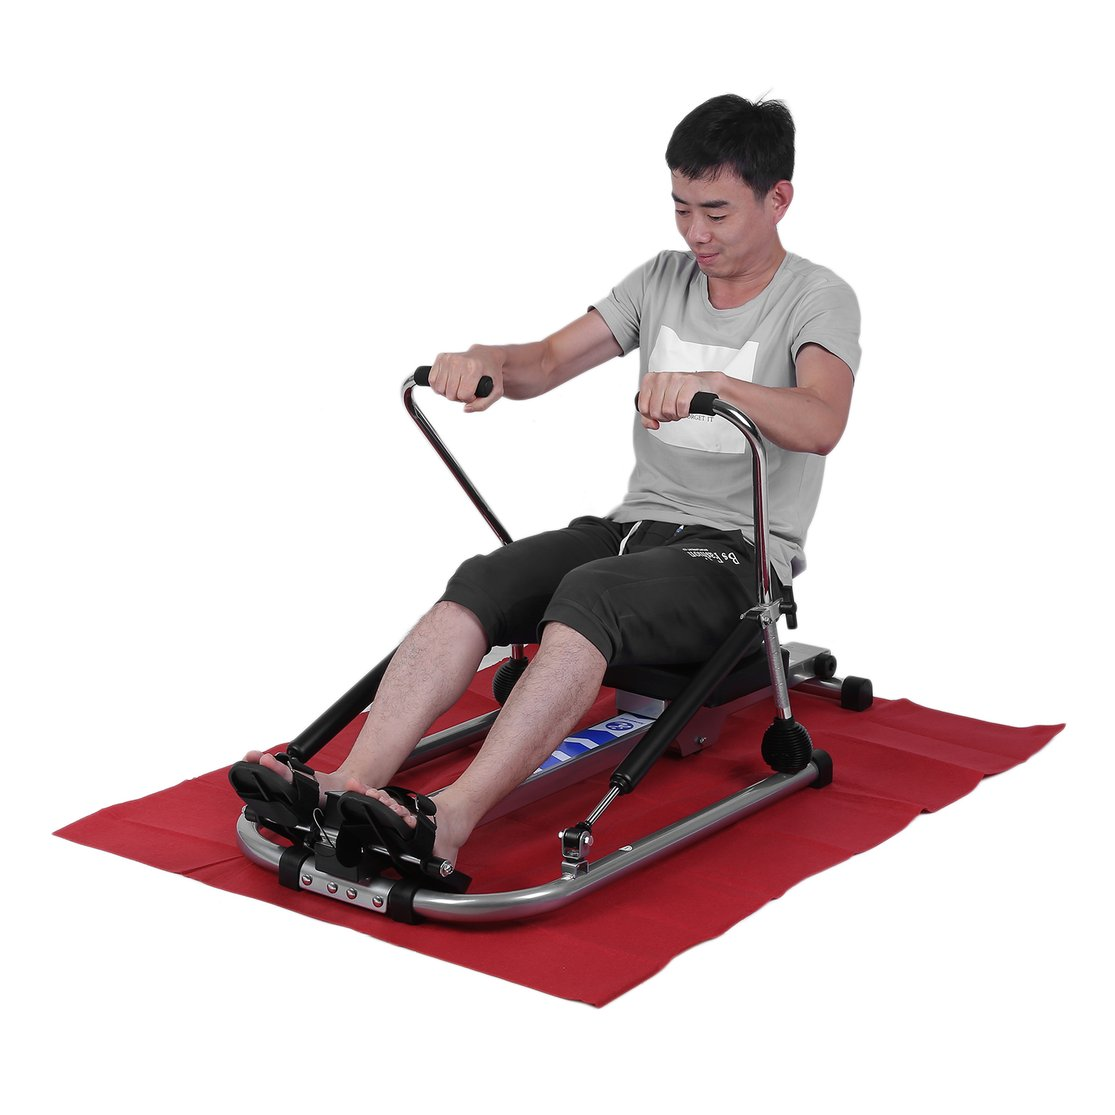 Multifunctional Body Glider Fitness Home Gym Training Exe...